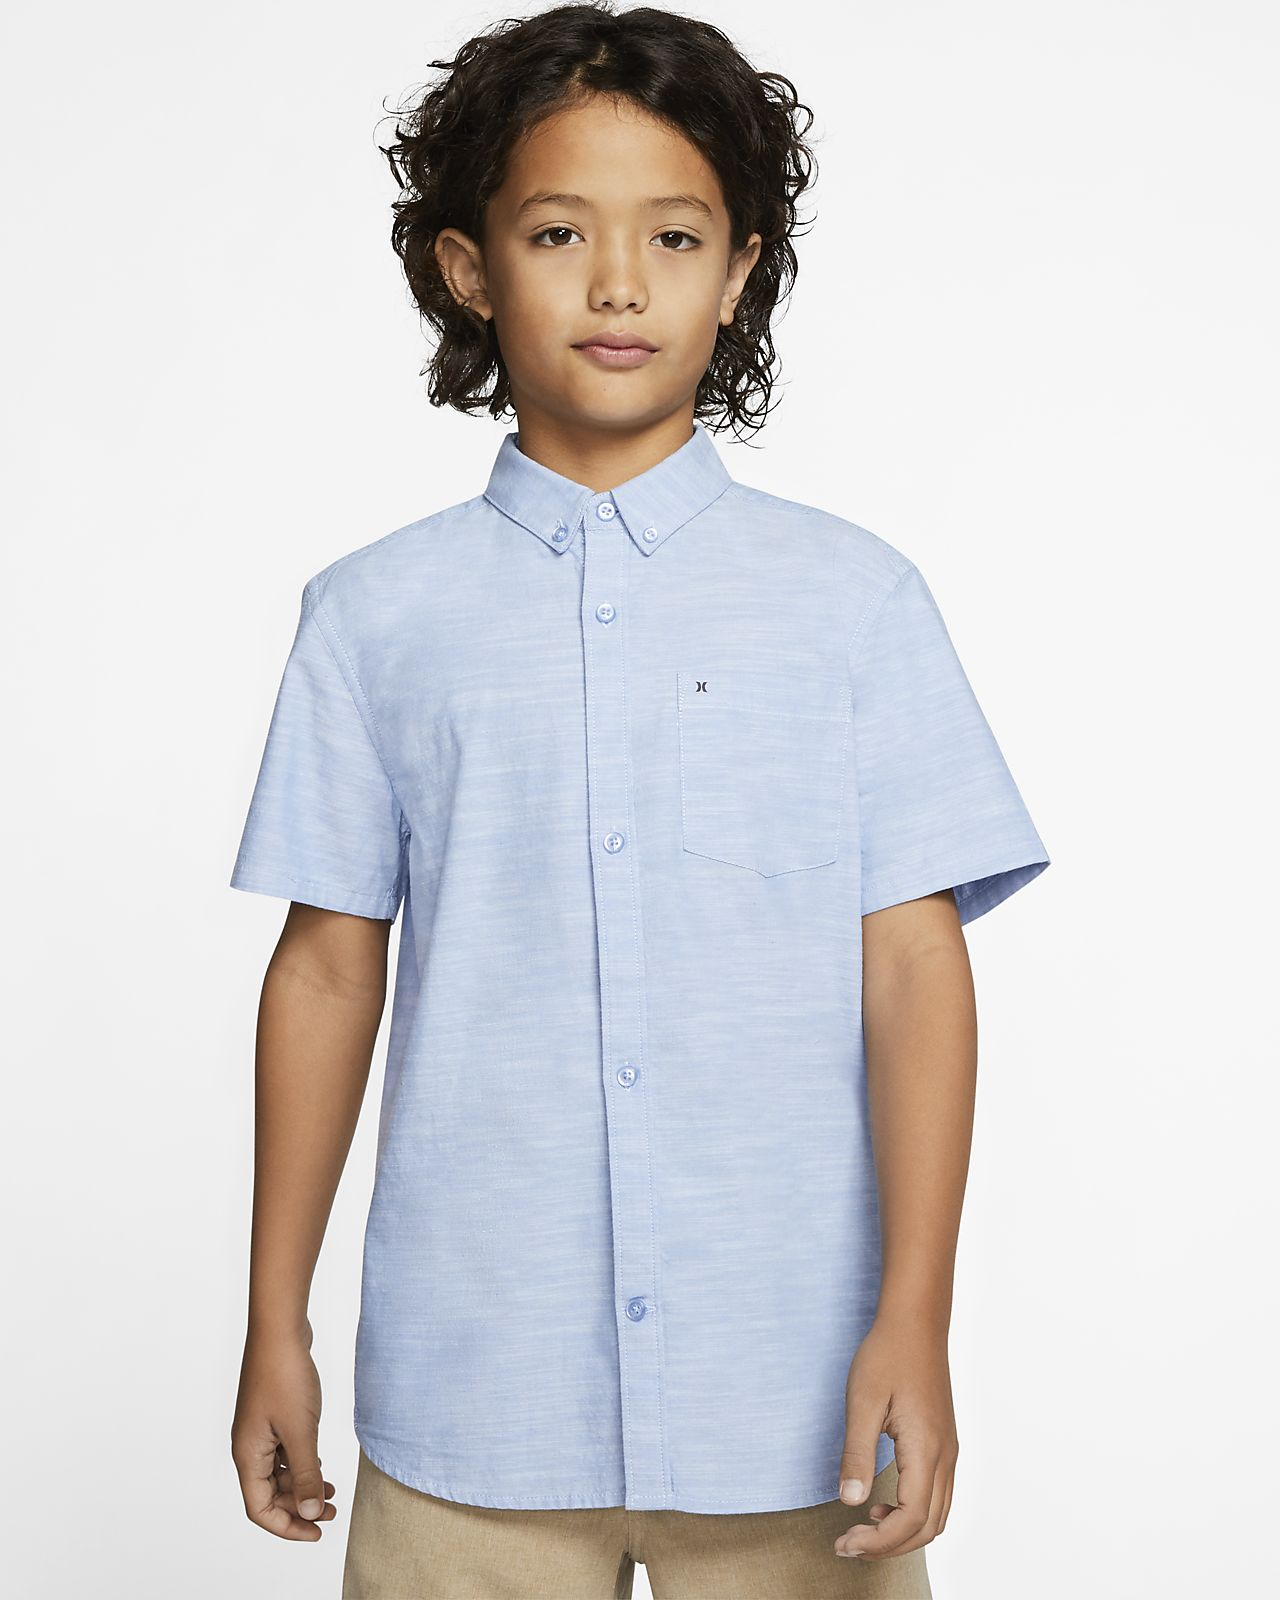 Hurley One And Only Boys' Short-Sleeve Top